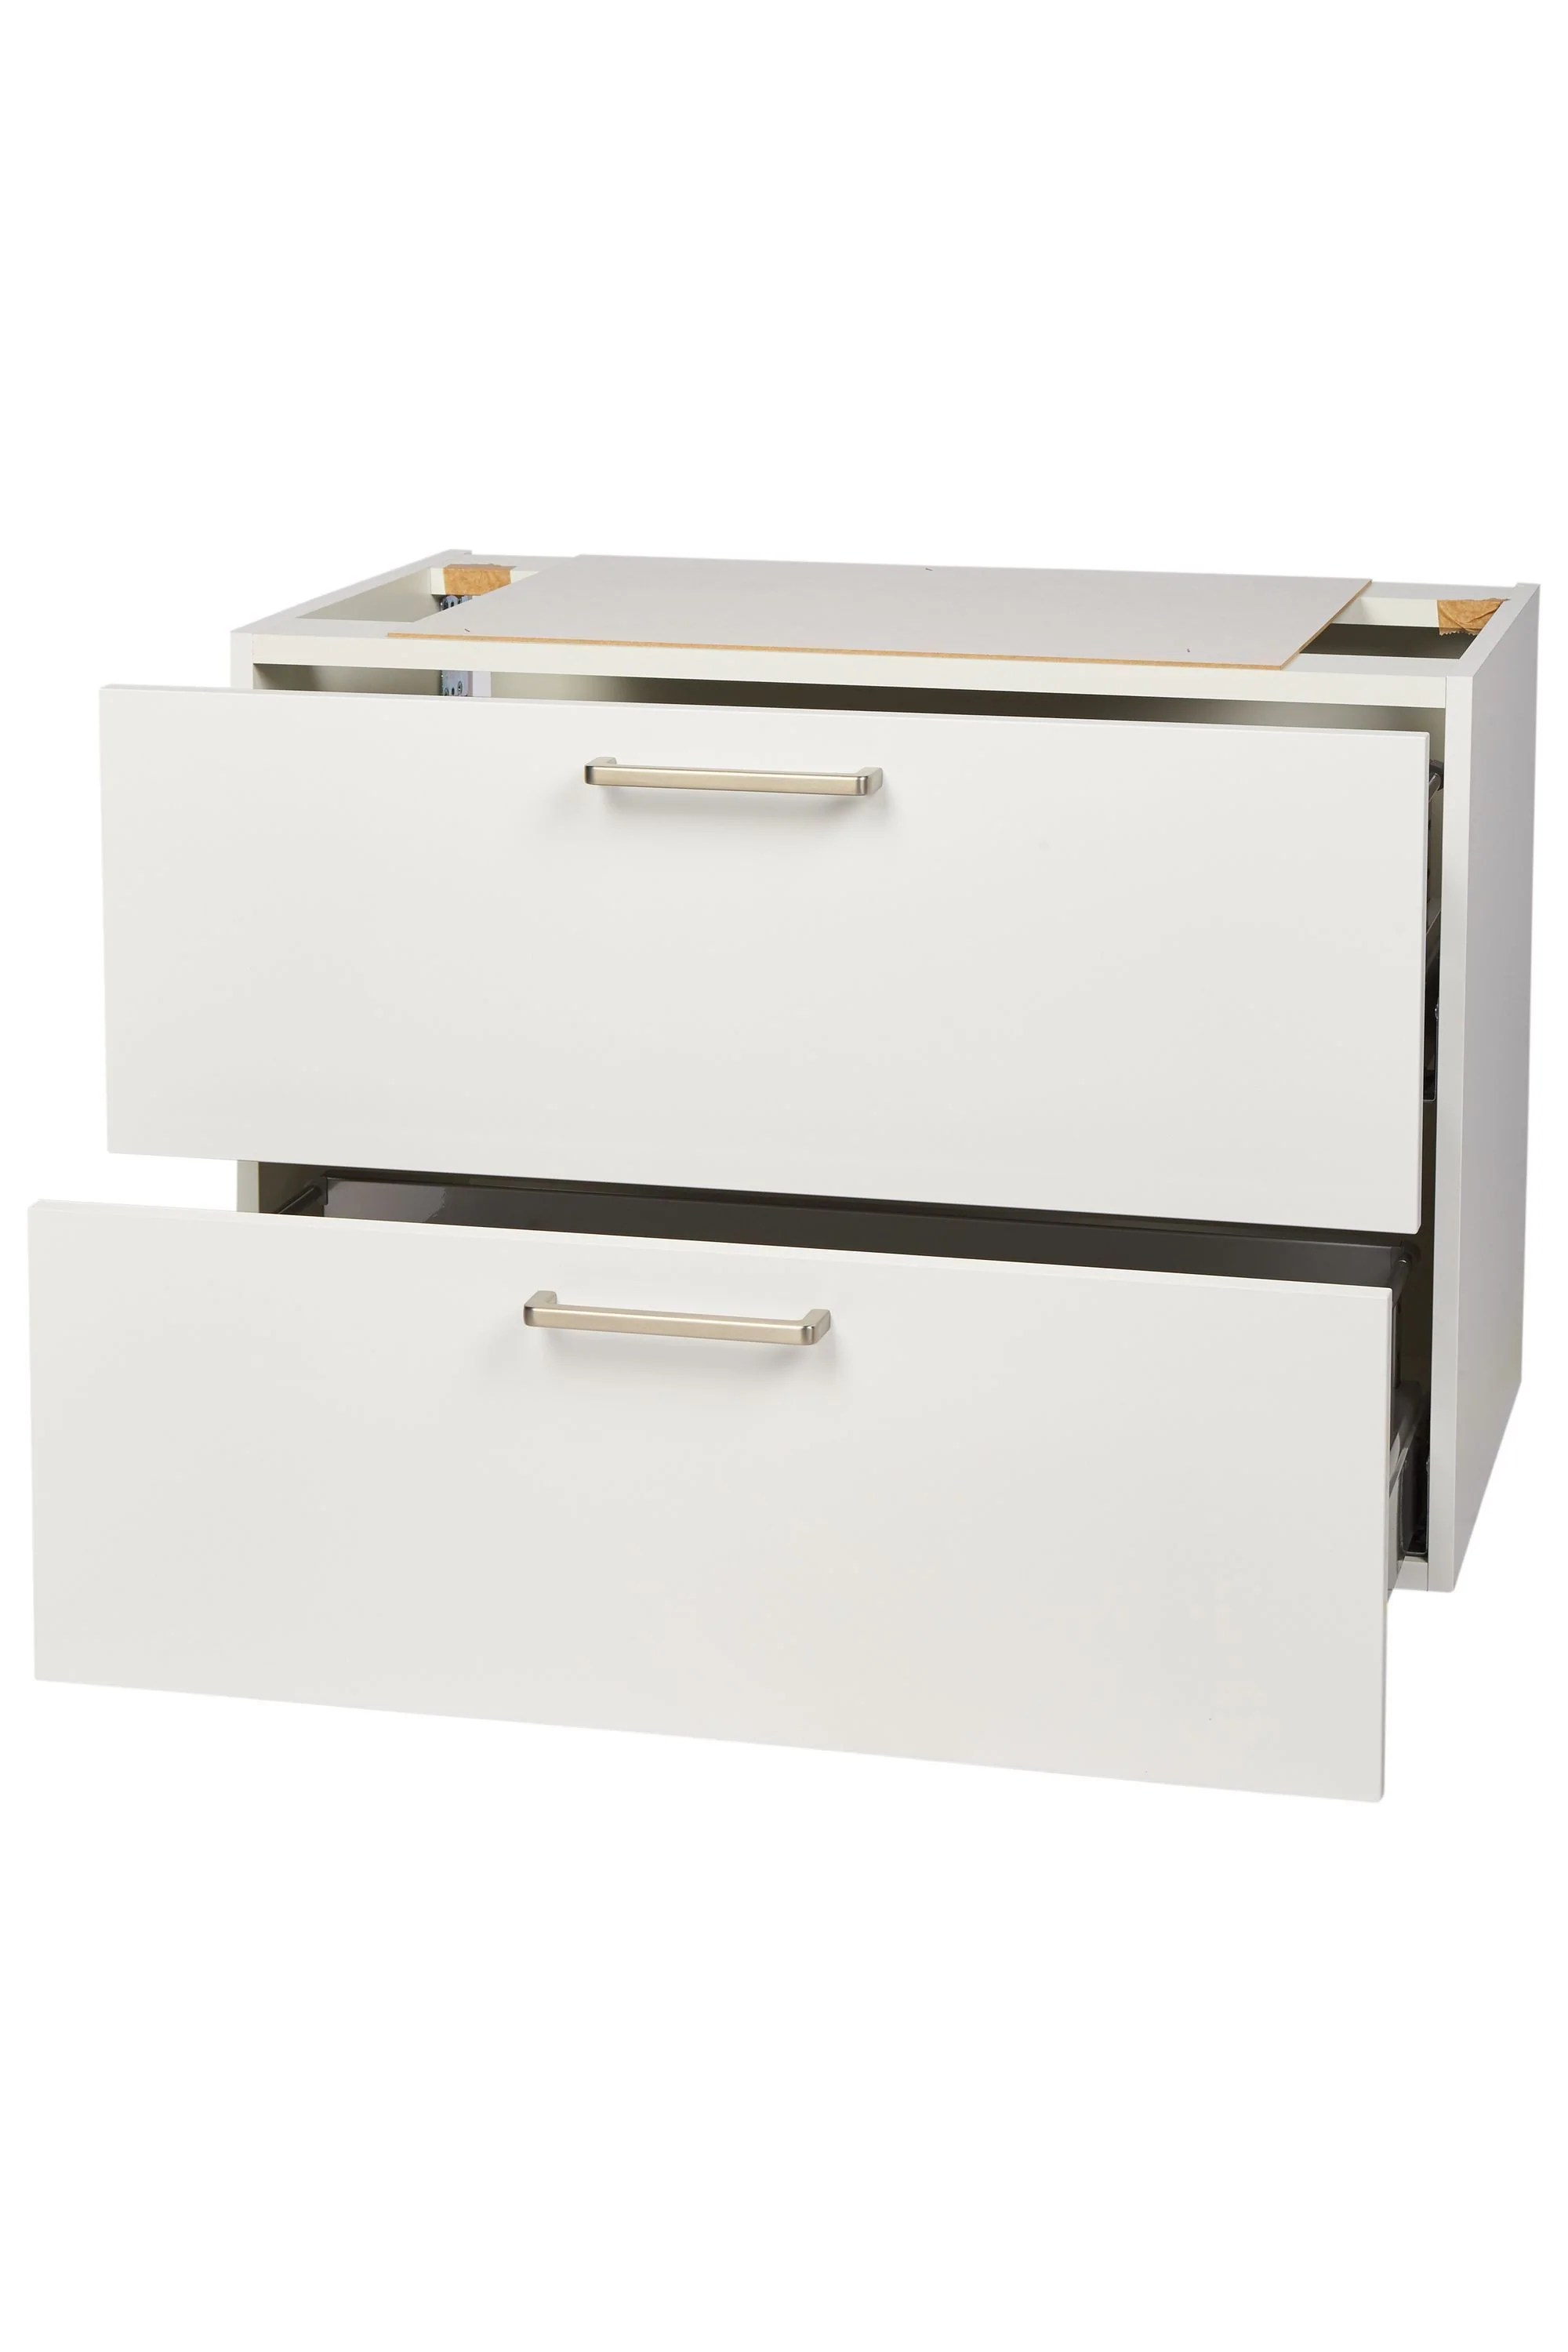 Nobilia Vanity Unit Bathroom Vanity Unit 2 Drawers 60cm 80cm White Top Shelf De